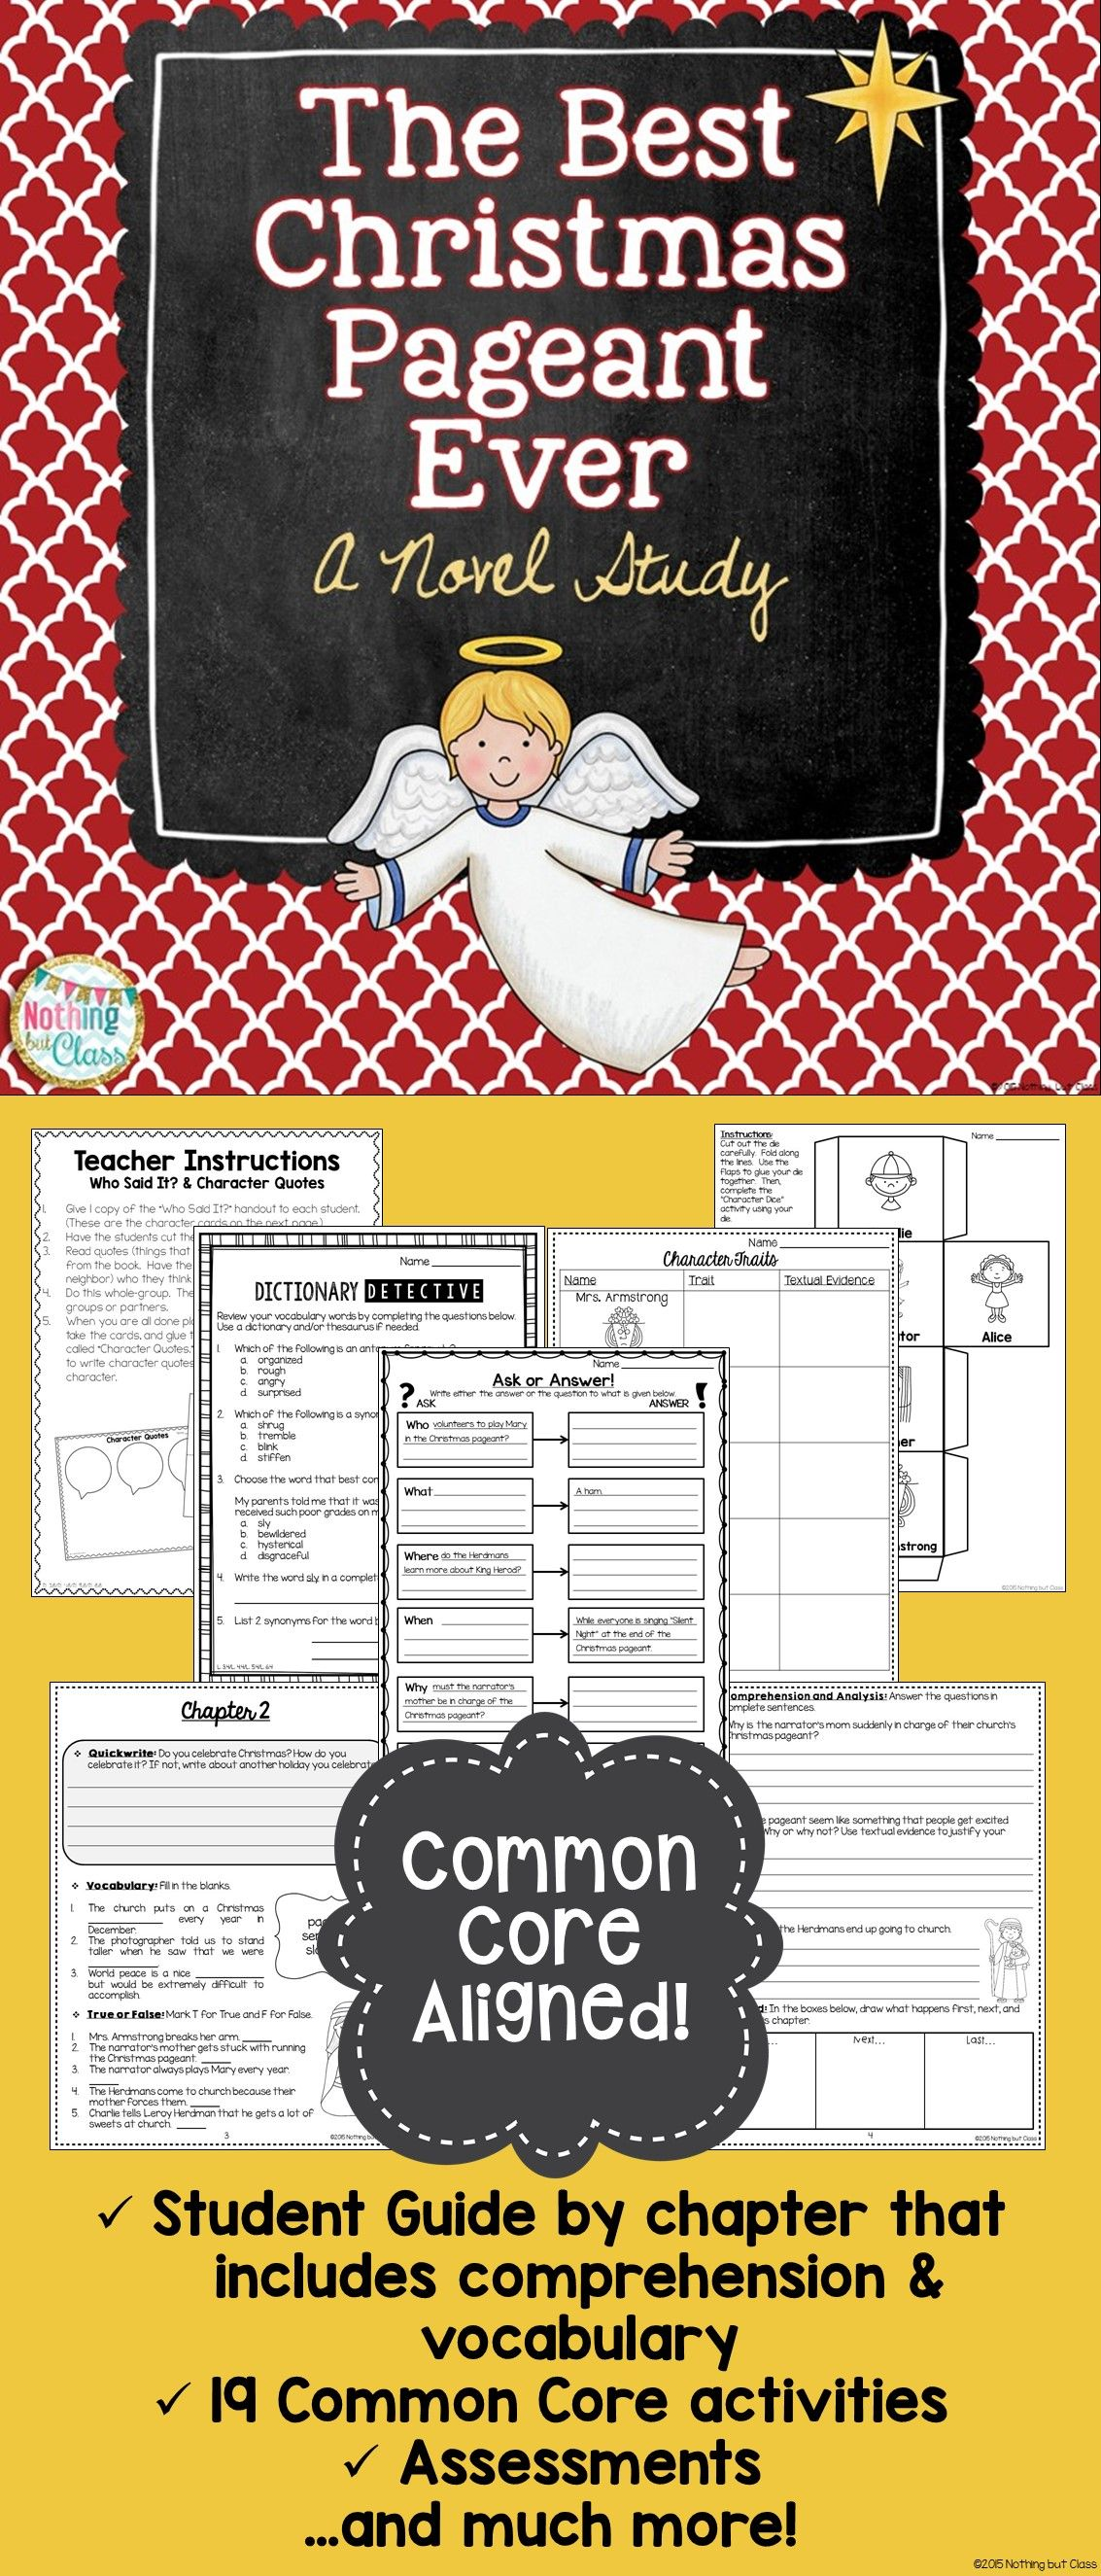 worksheet The Best Christmas Pageant Ever Worksheets the best christmas pageant ever novel study unit common core unit